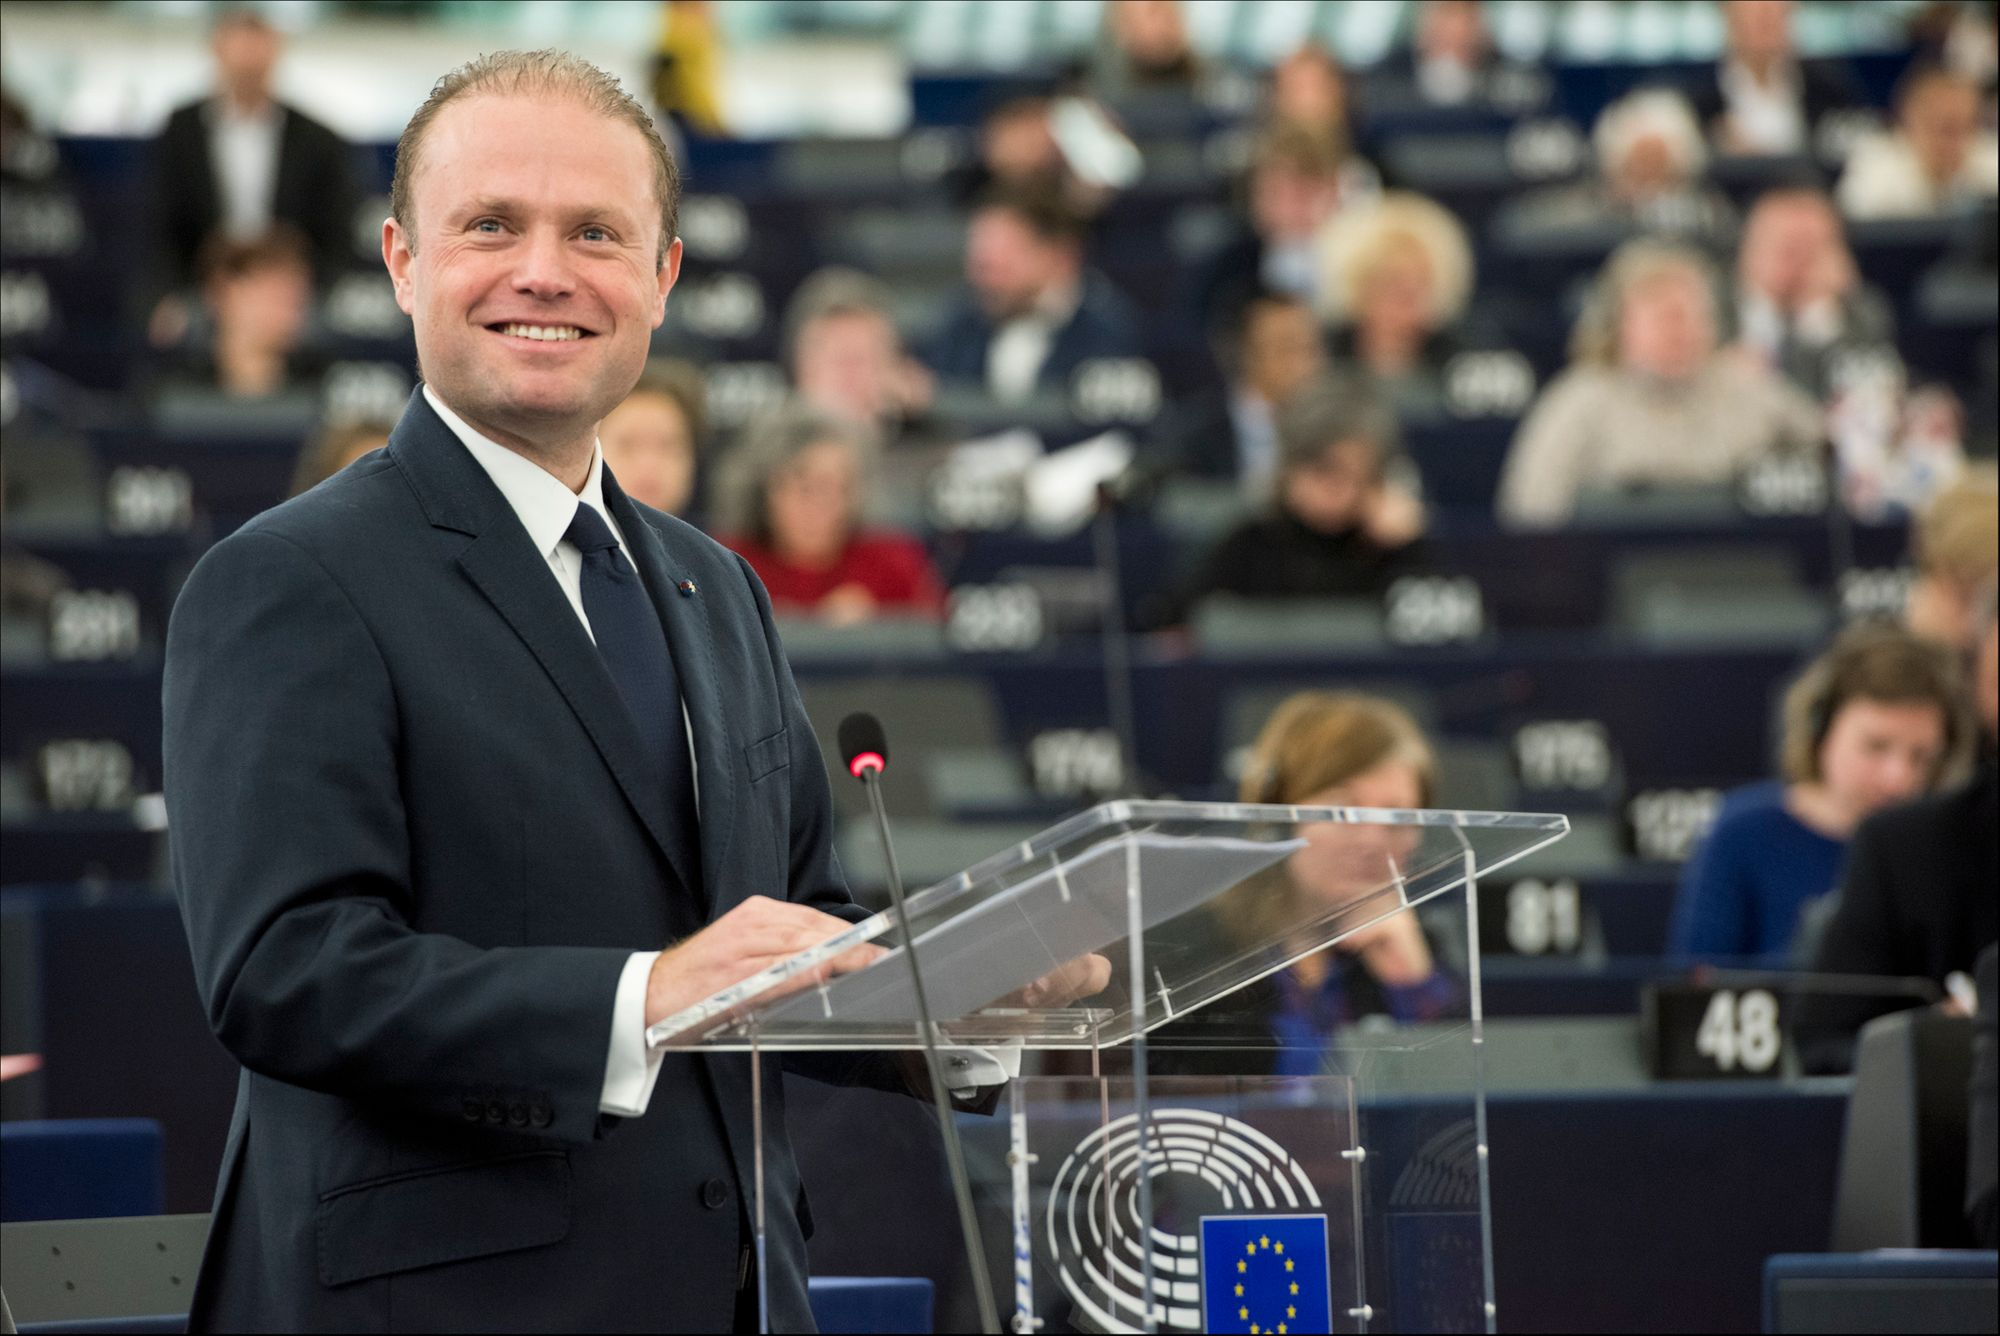 Former Prime Minister of Malta Joseph Muscat was instrumental in making his island nation an early crypto hotspot. By the European Parliament, licensed under CC BY-NC-ND 2.0.